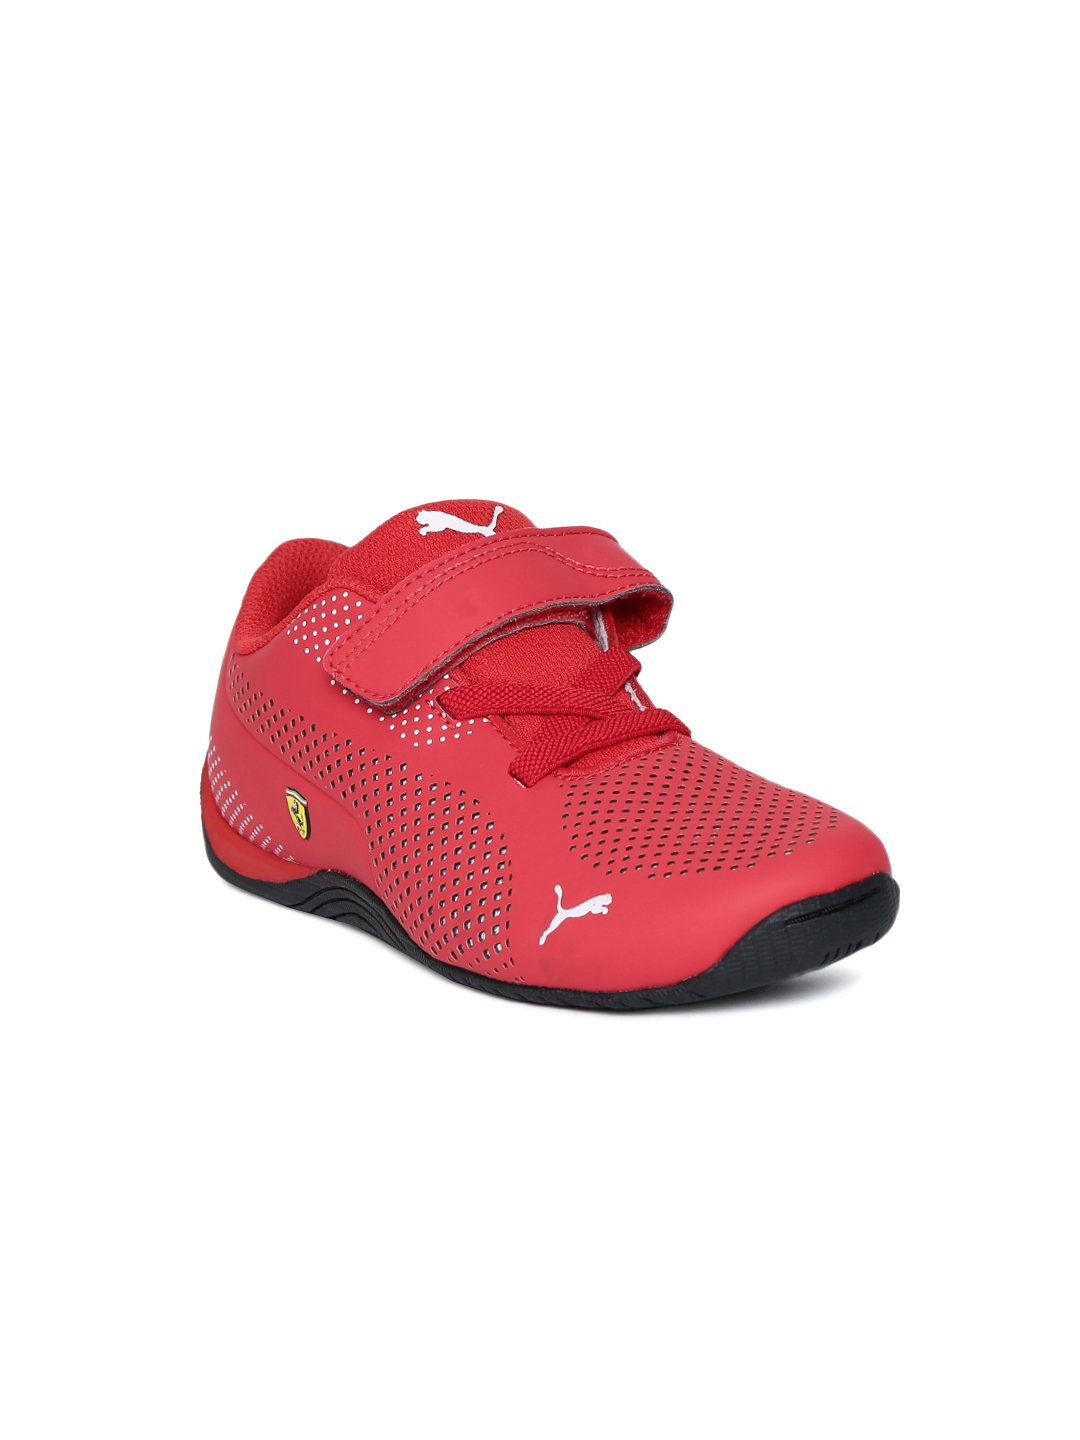 c97dea9d4206 Buy Puma Kids Red SF Drift Cat 5 Ultra V PS Perforated Sneakers ...